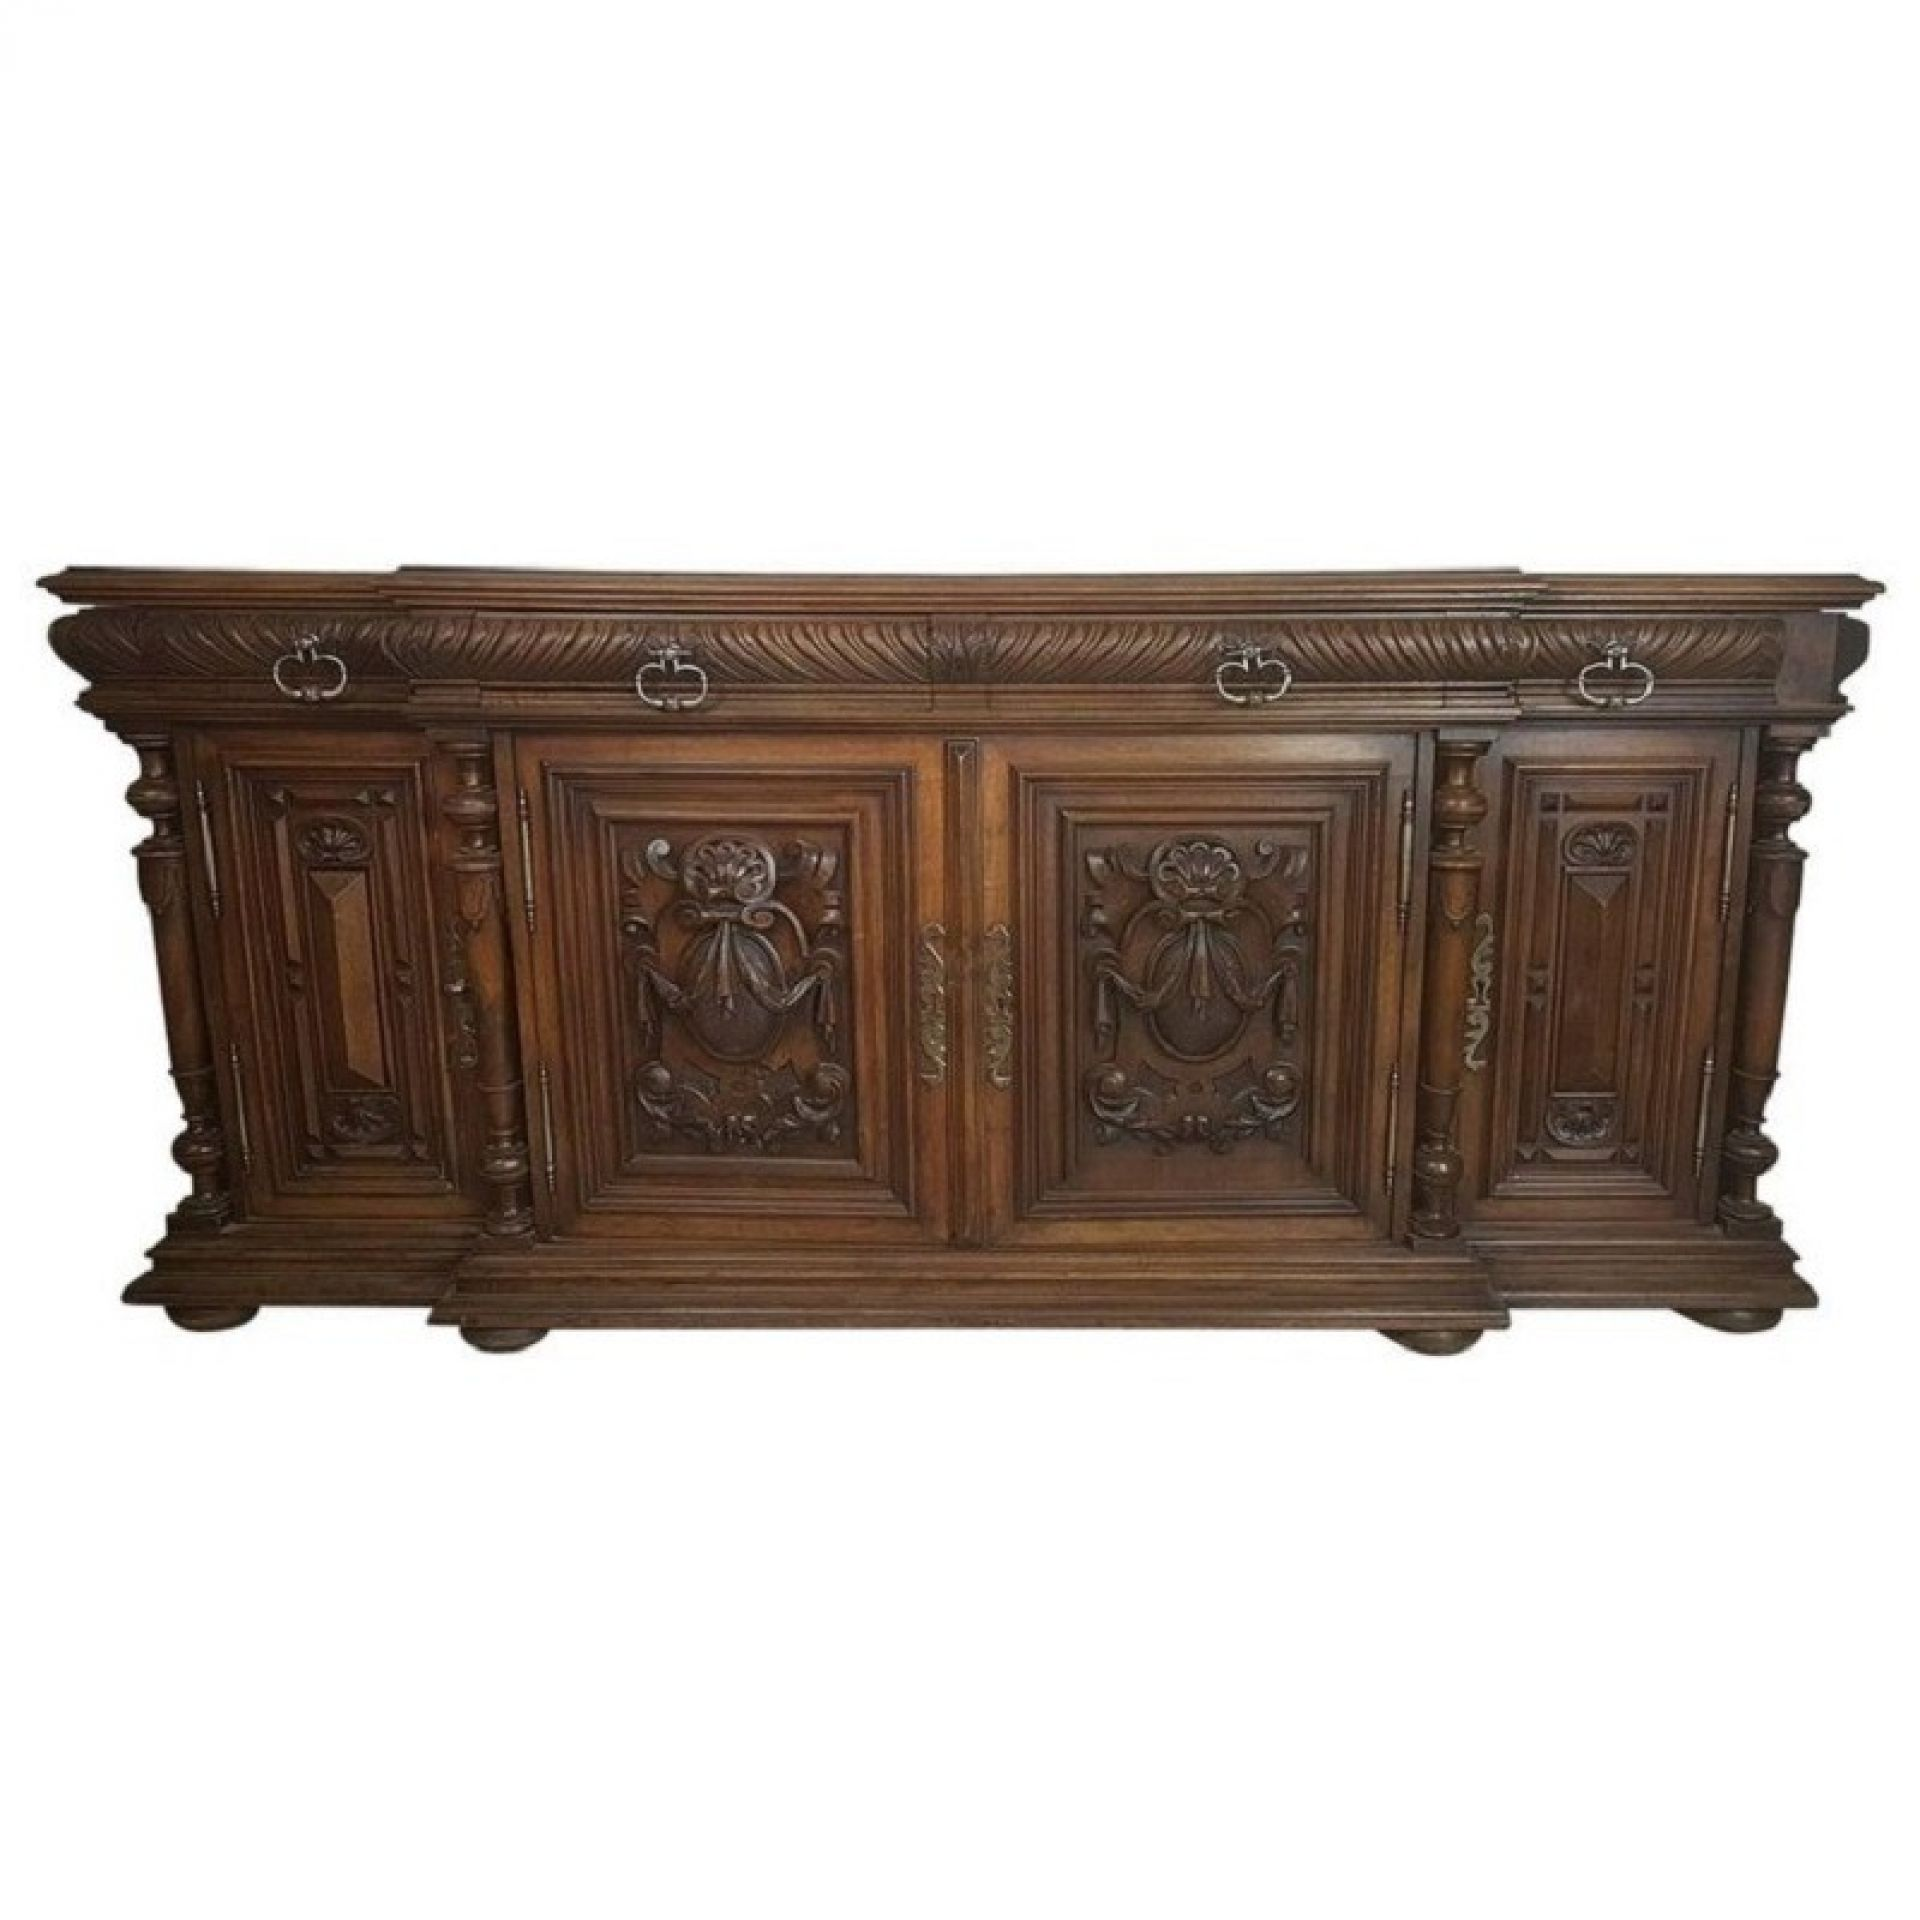 19th Century Italian Neoclassical Style Walnut Carved Sideboard